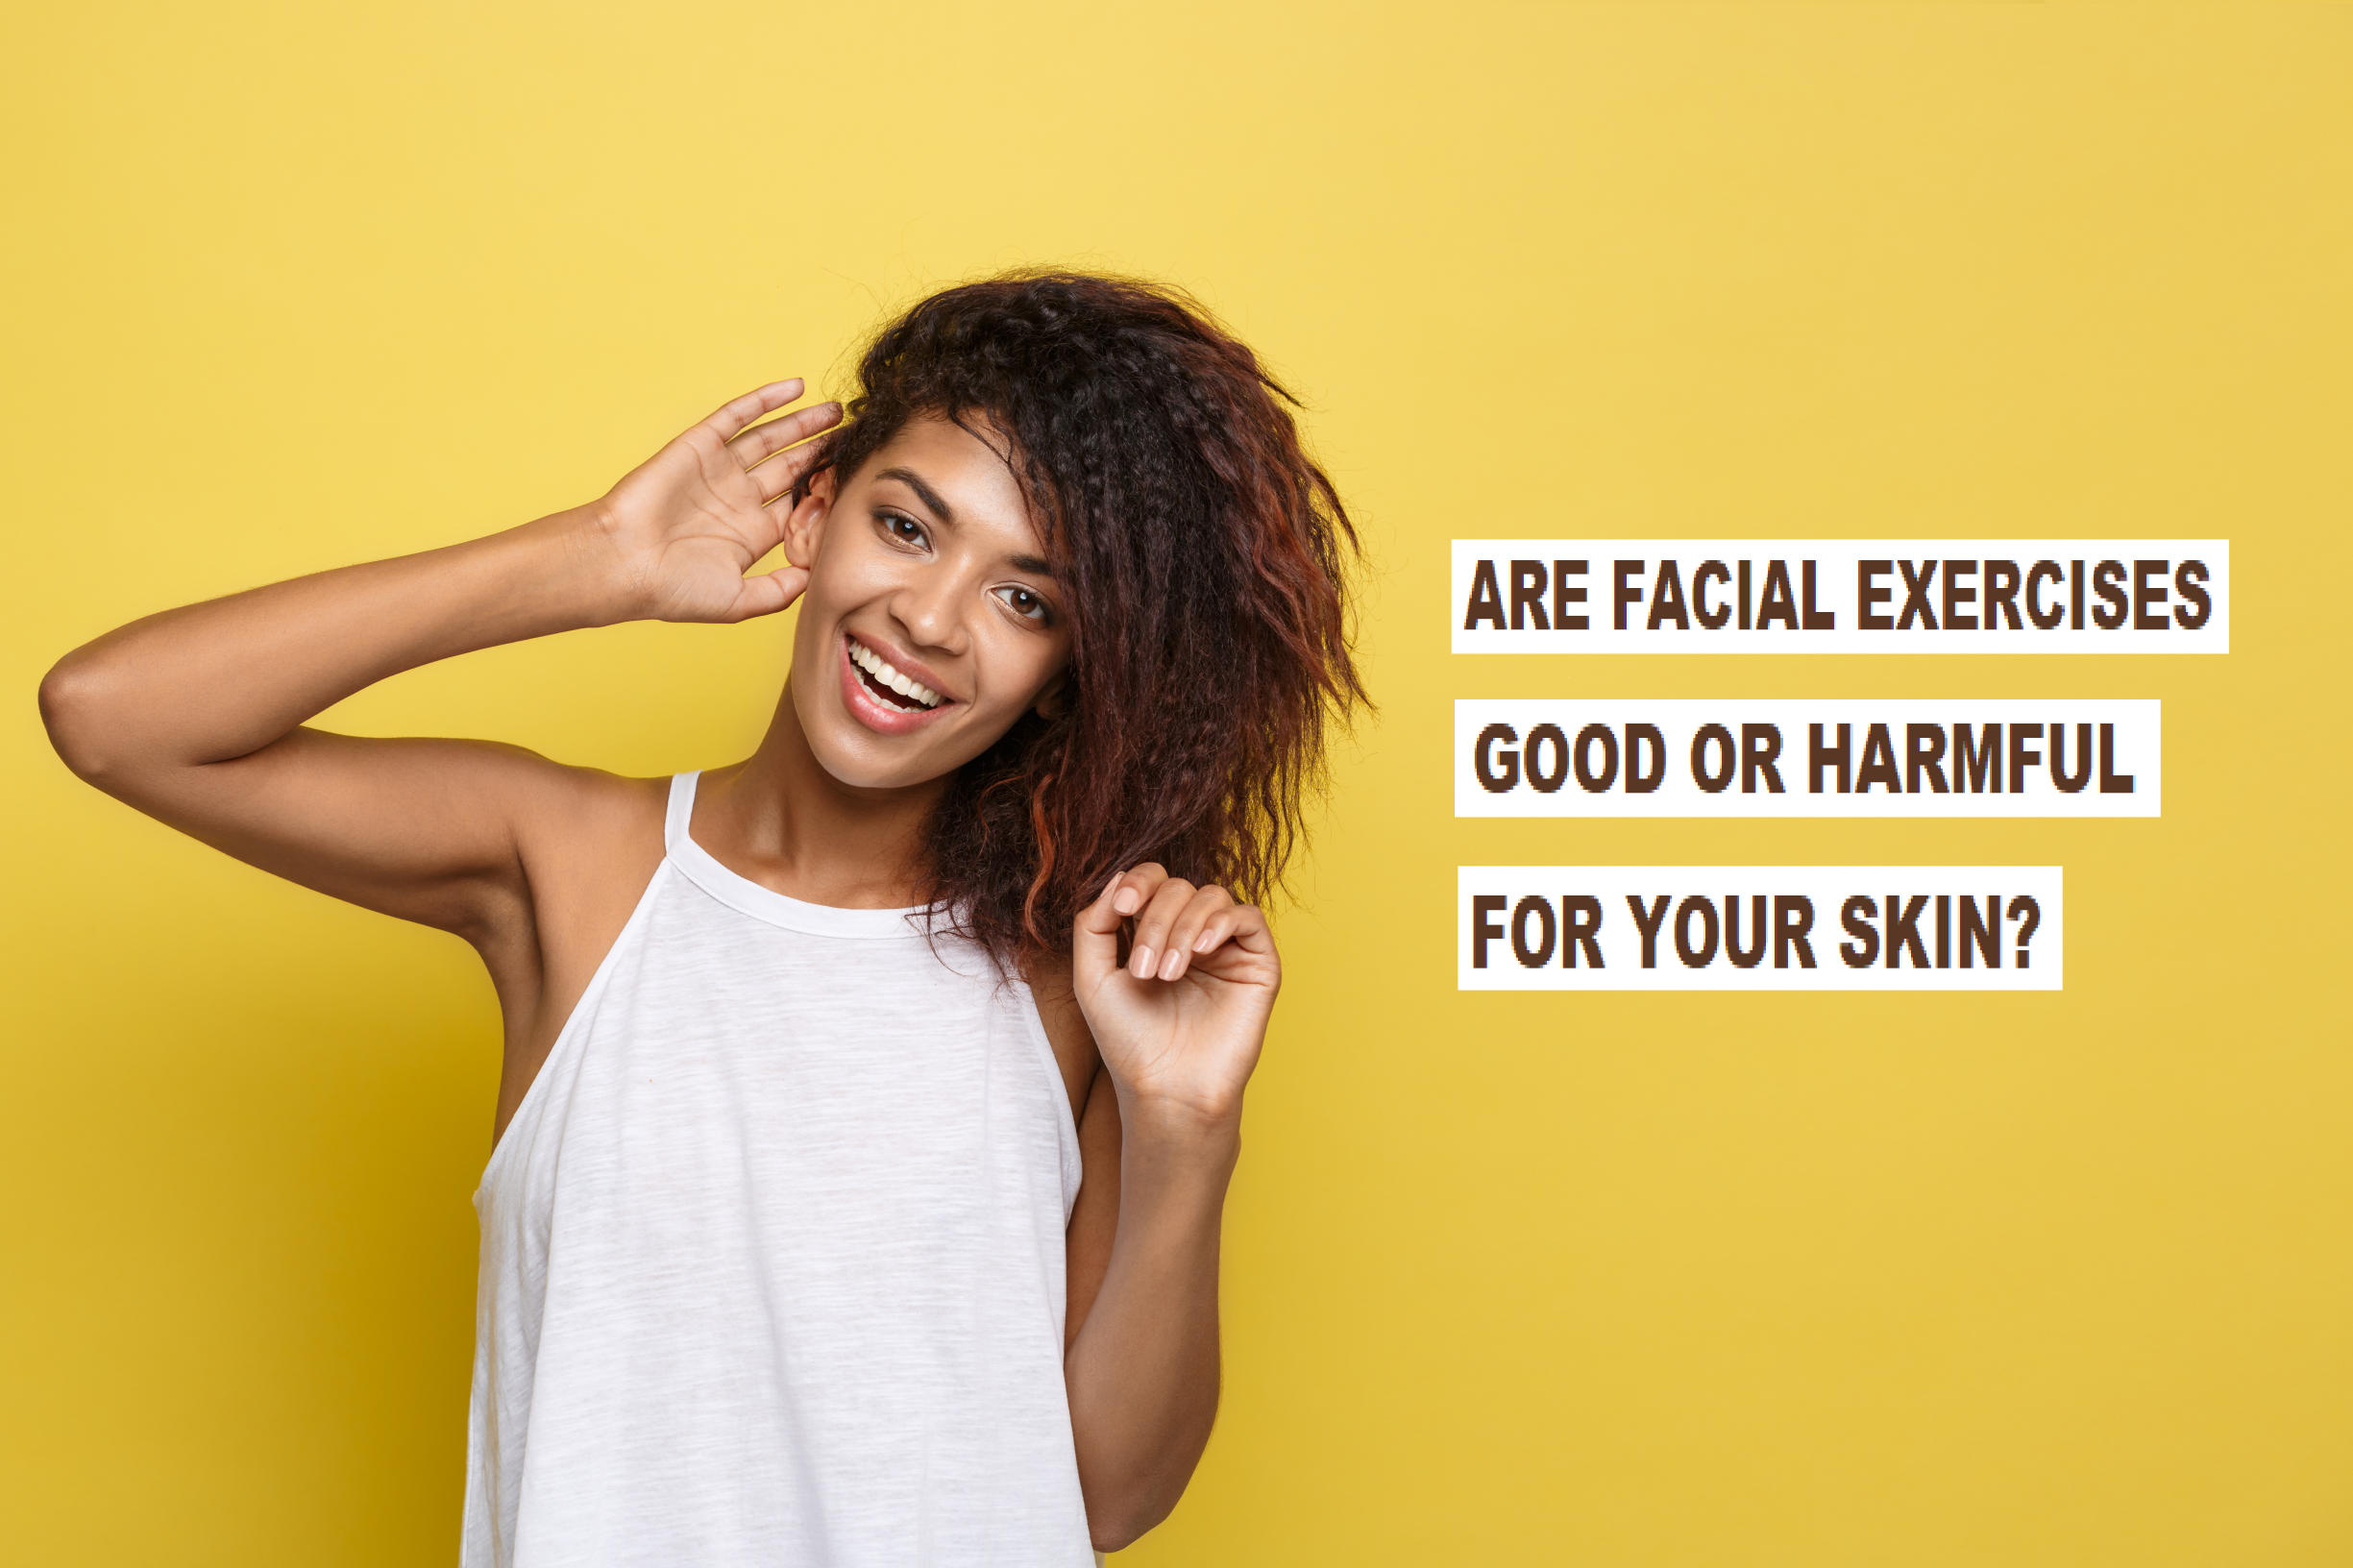 Are Facial Exercises Good or Bad for Your Skin? 1